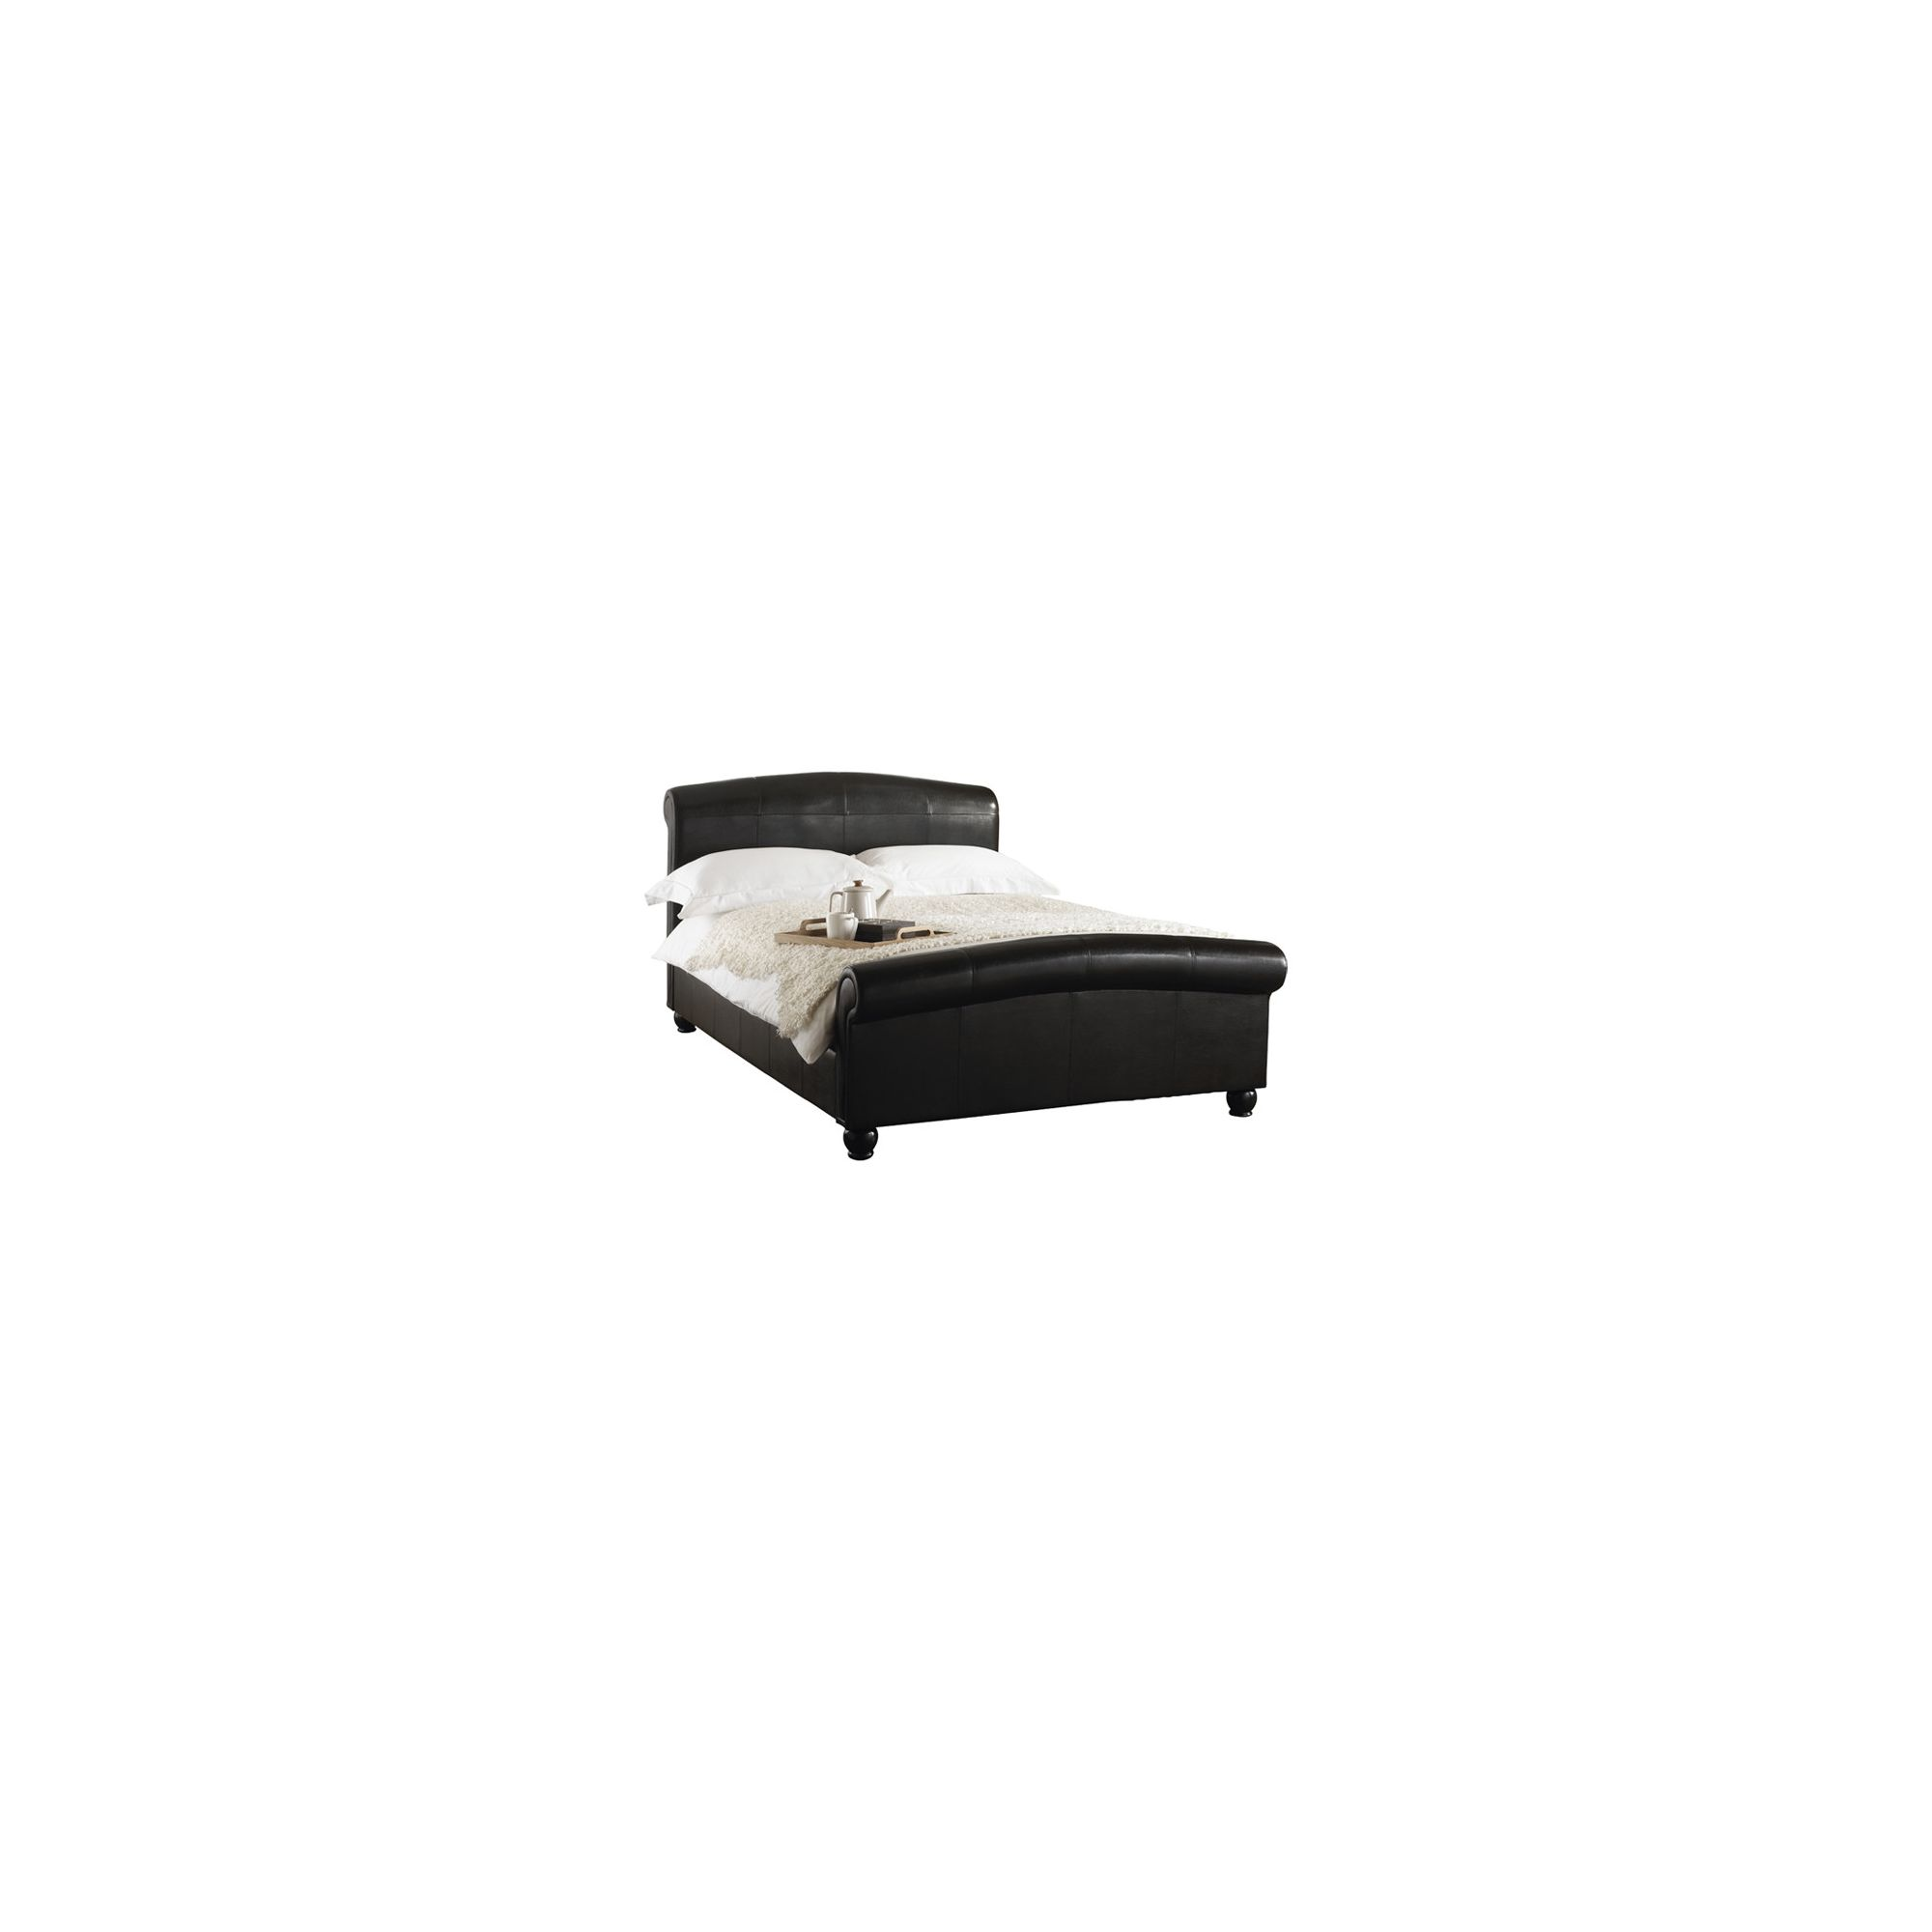 Hyder Knightsbridge Faux Leather Bed - King at Tesco Direct